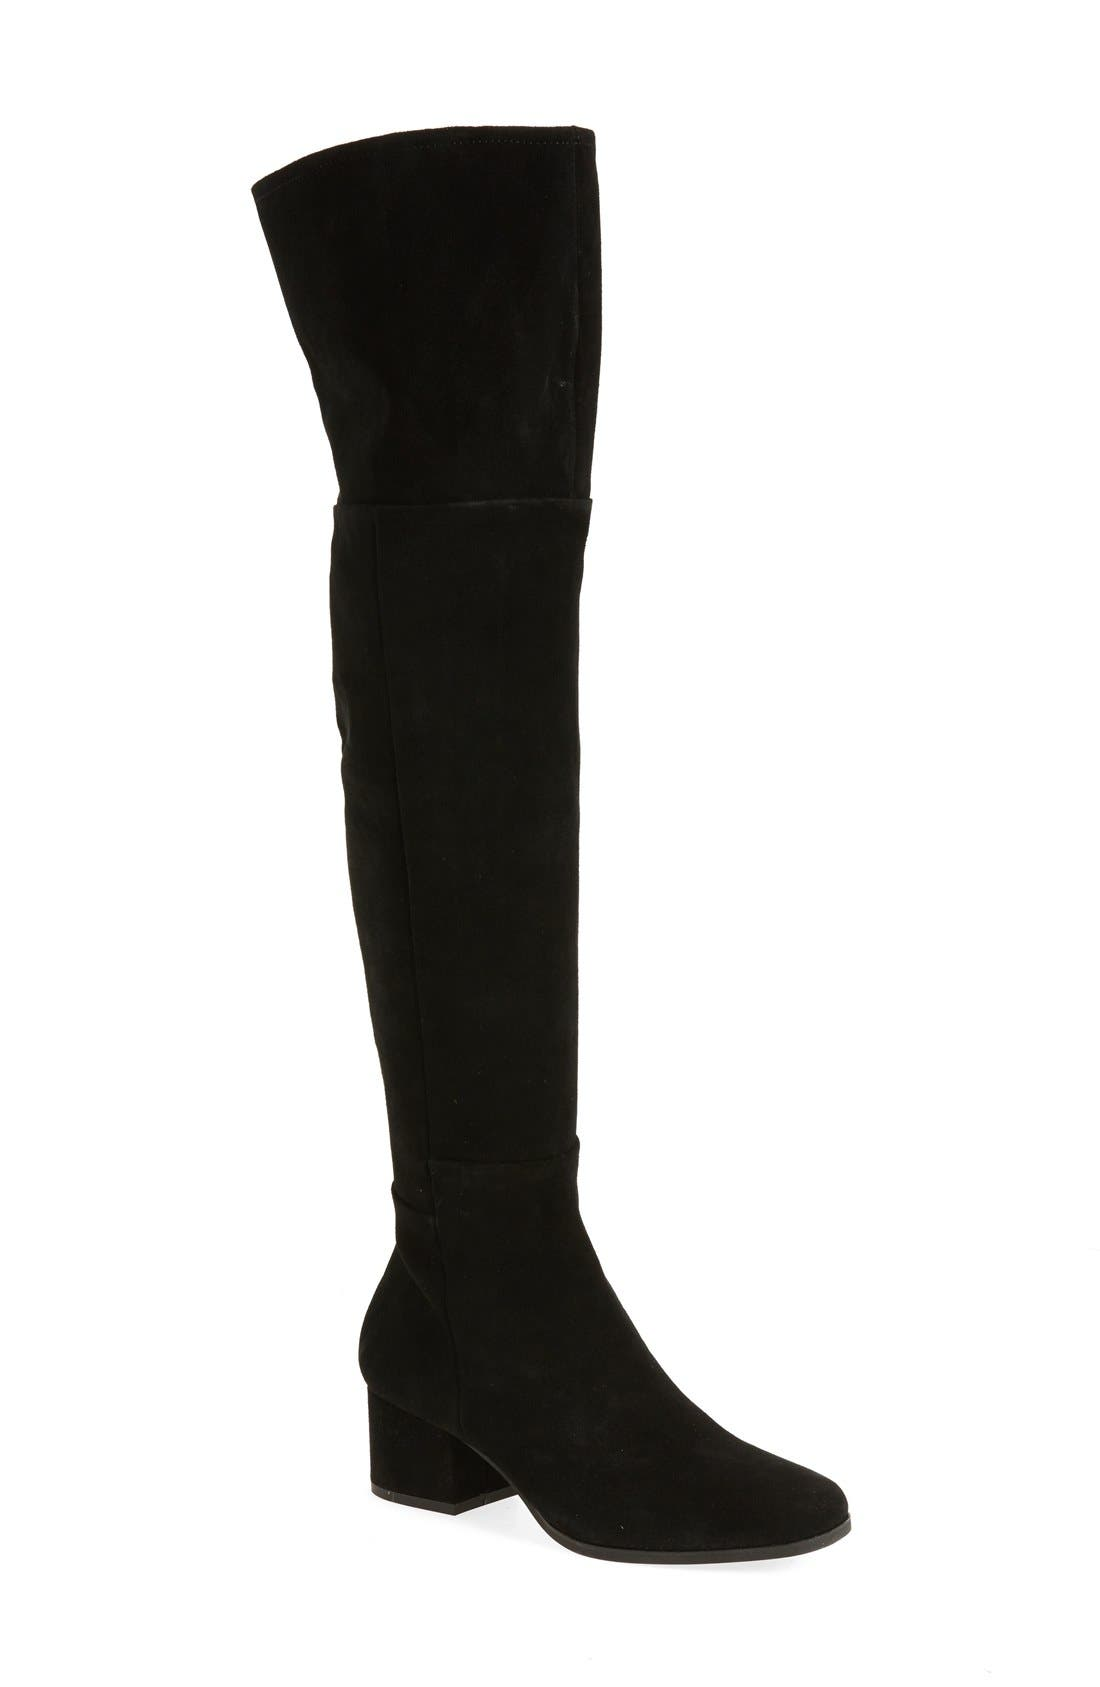 Main Image - Steven by Steve Madden Phaser Over the Knee Boot (Women)